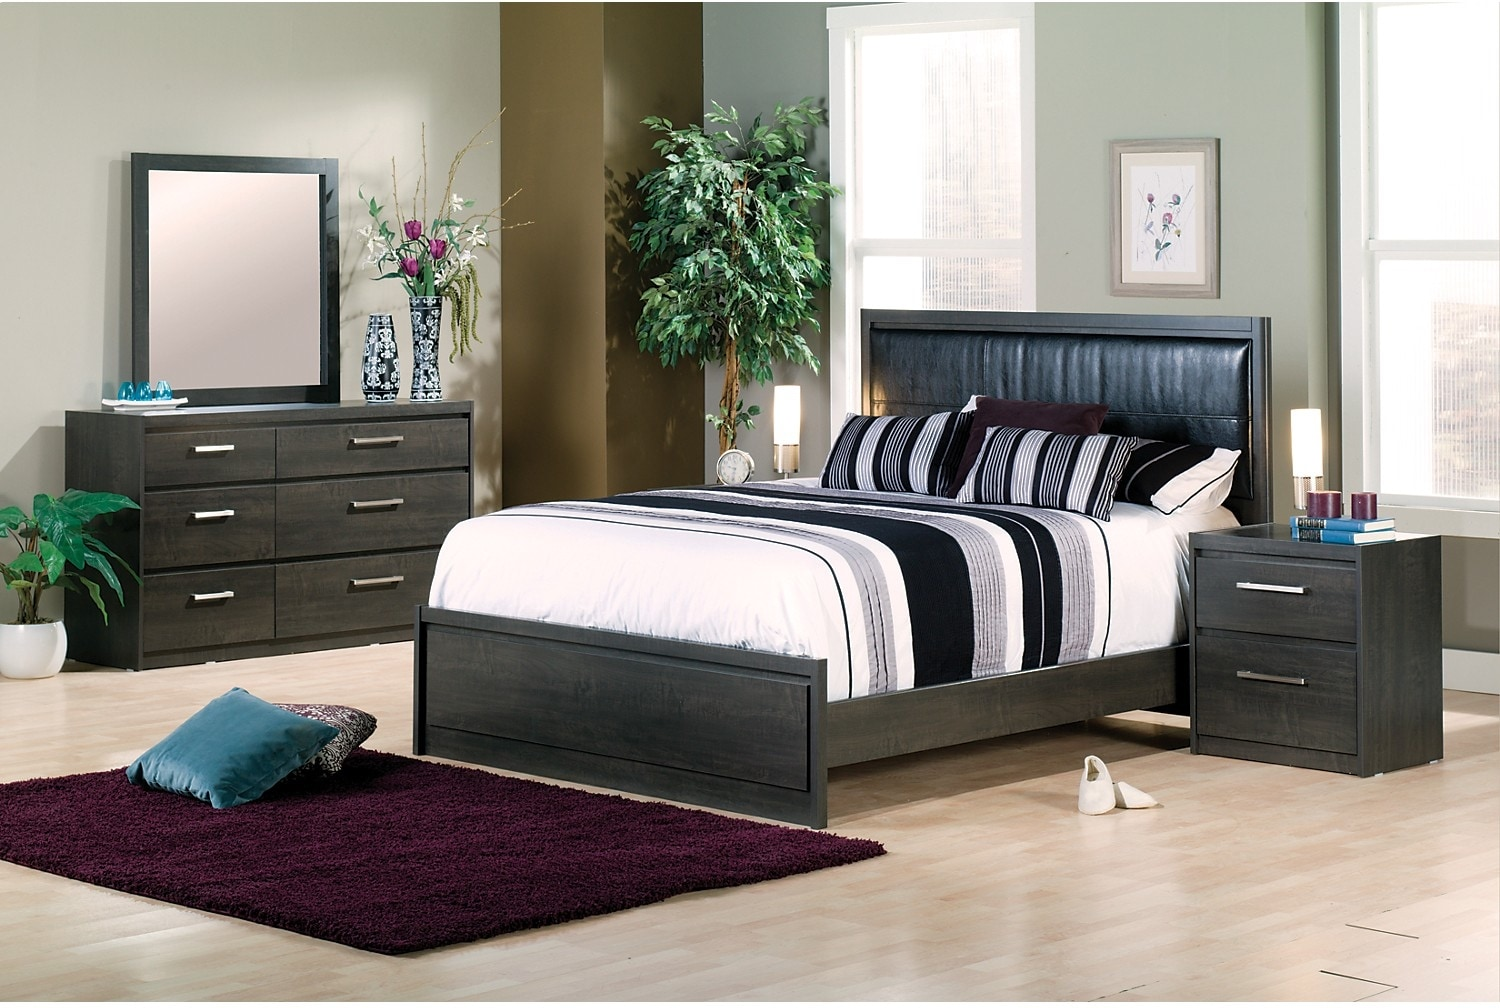 Bedroom Furniture - Tyler 8-Piece King Bedroom Package